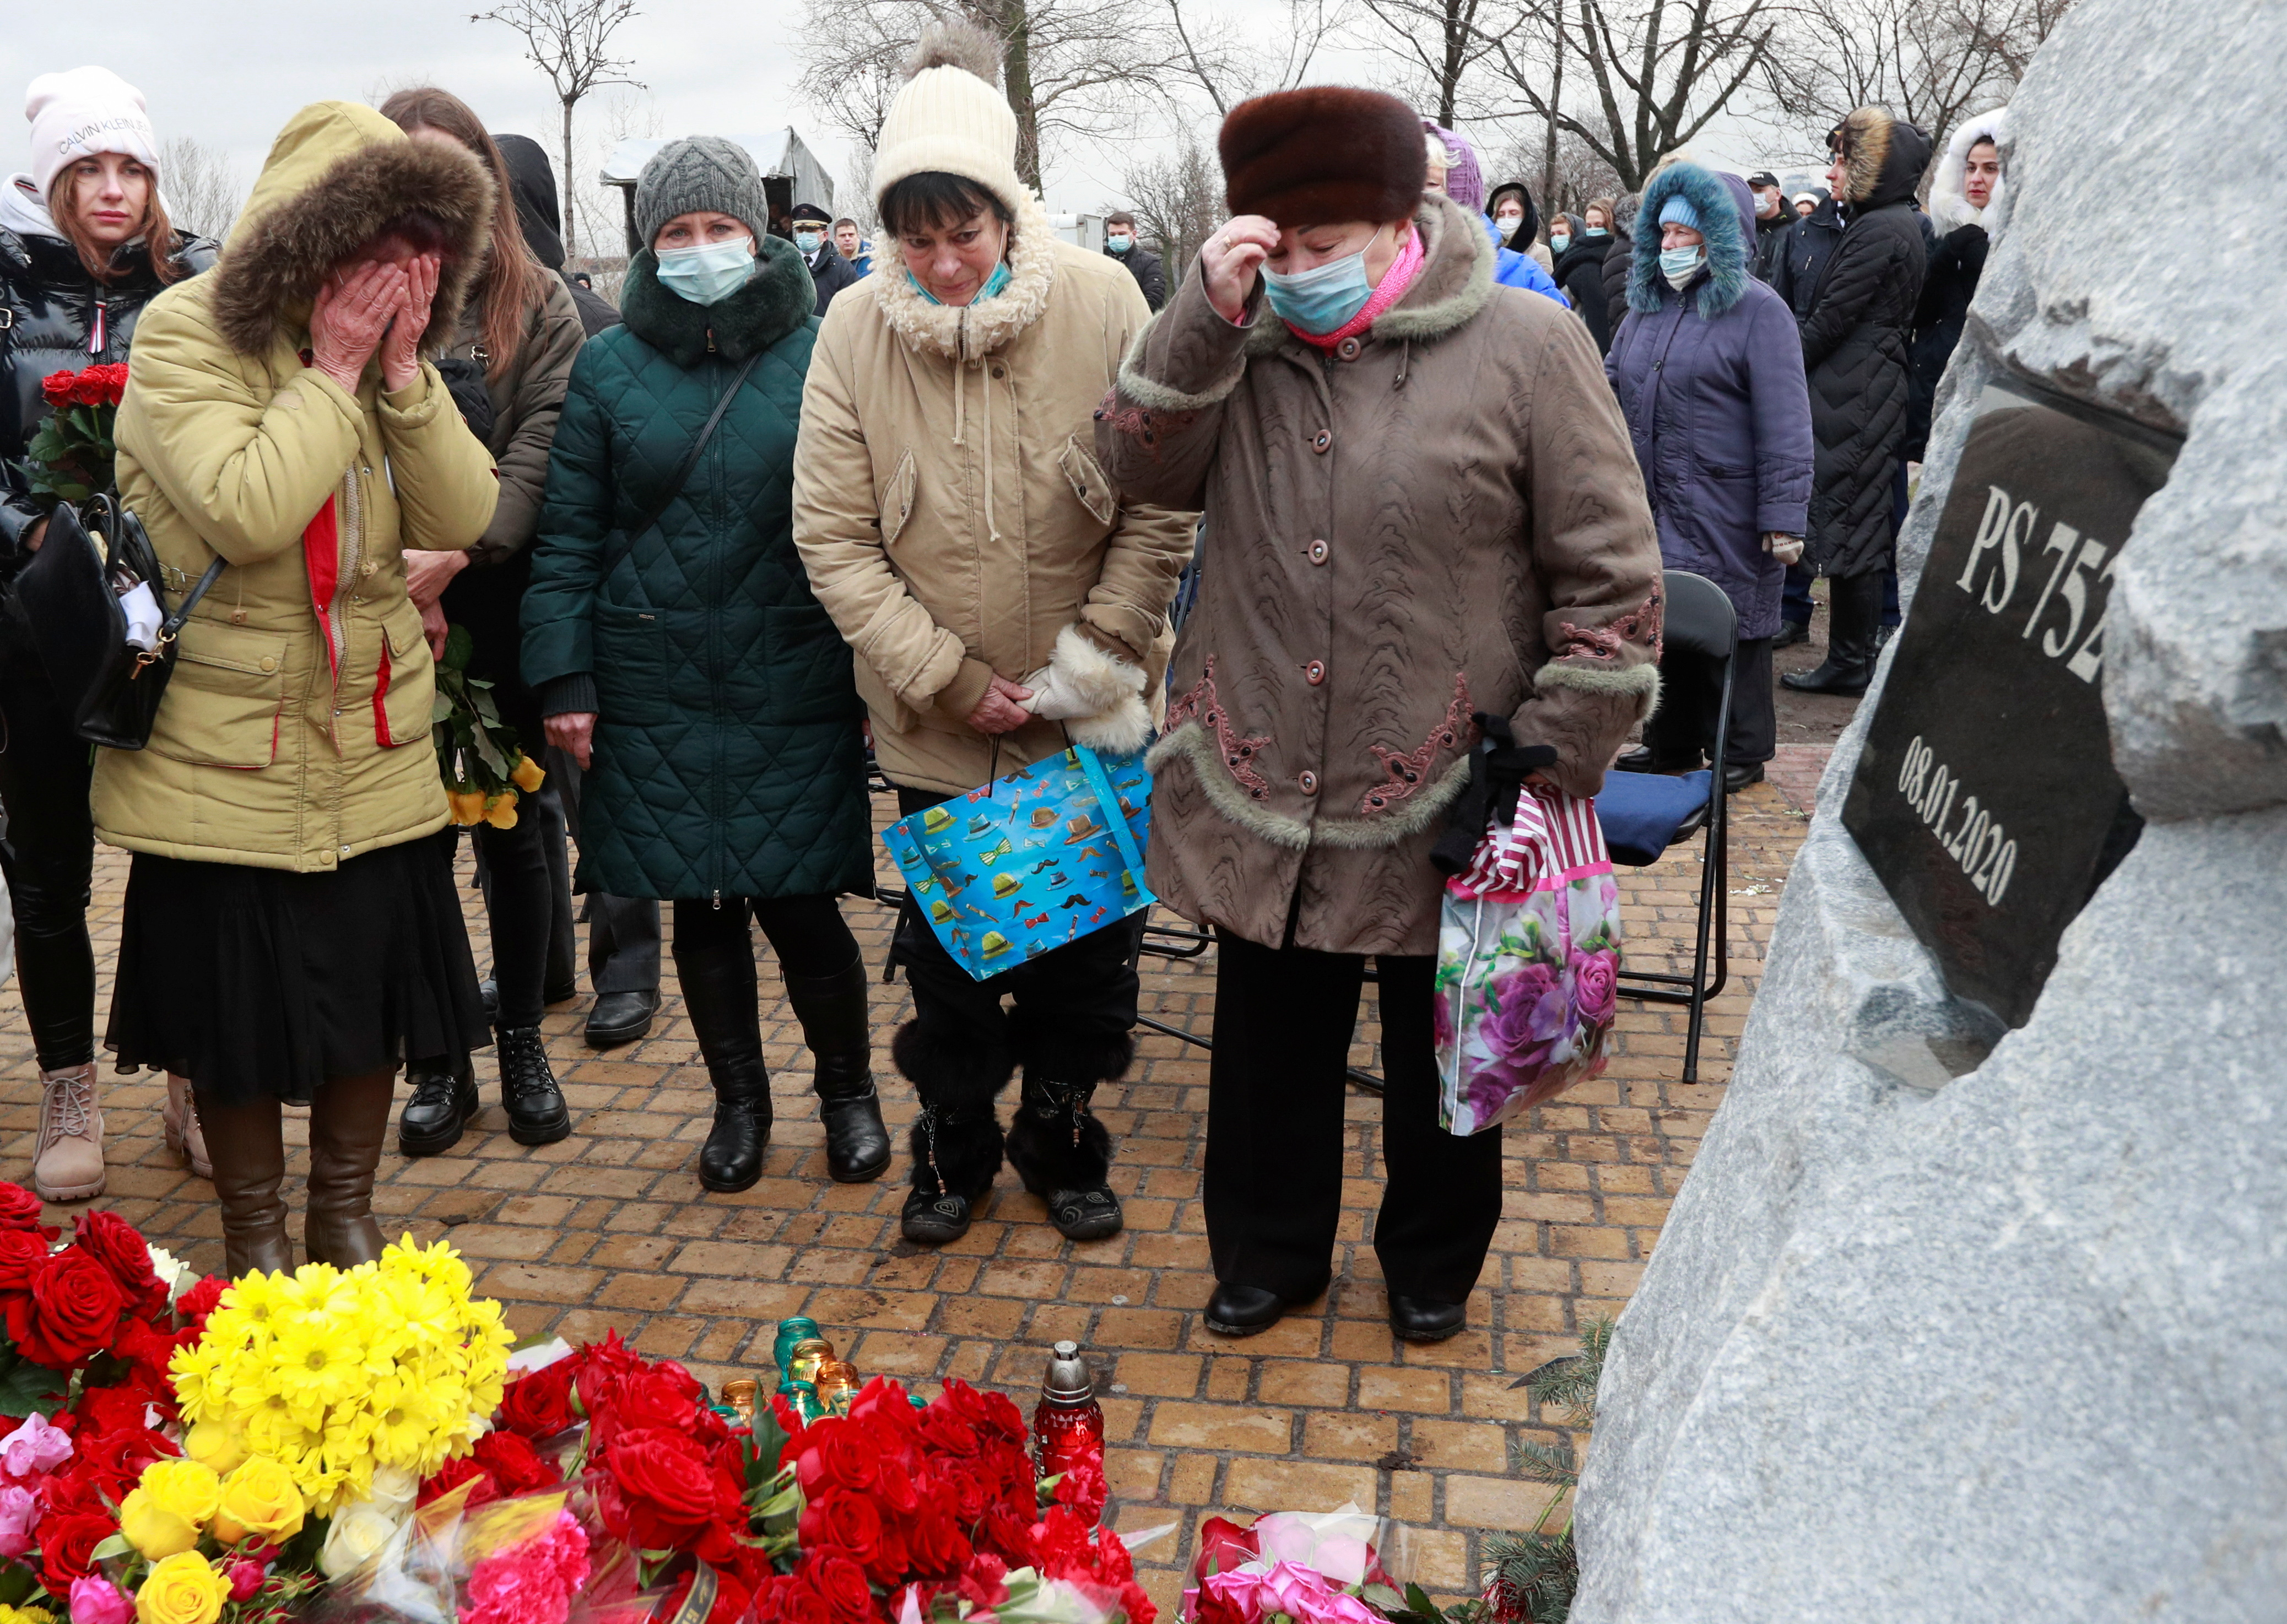 People attend a commemorative ceremony, which marks the first anniversary of the Ukraine International Airlines flight PS752 downing in Iranian airspace, in Kyiv, Ukraine January 8, 2021. REUTERS/Valentyn Ogirenko